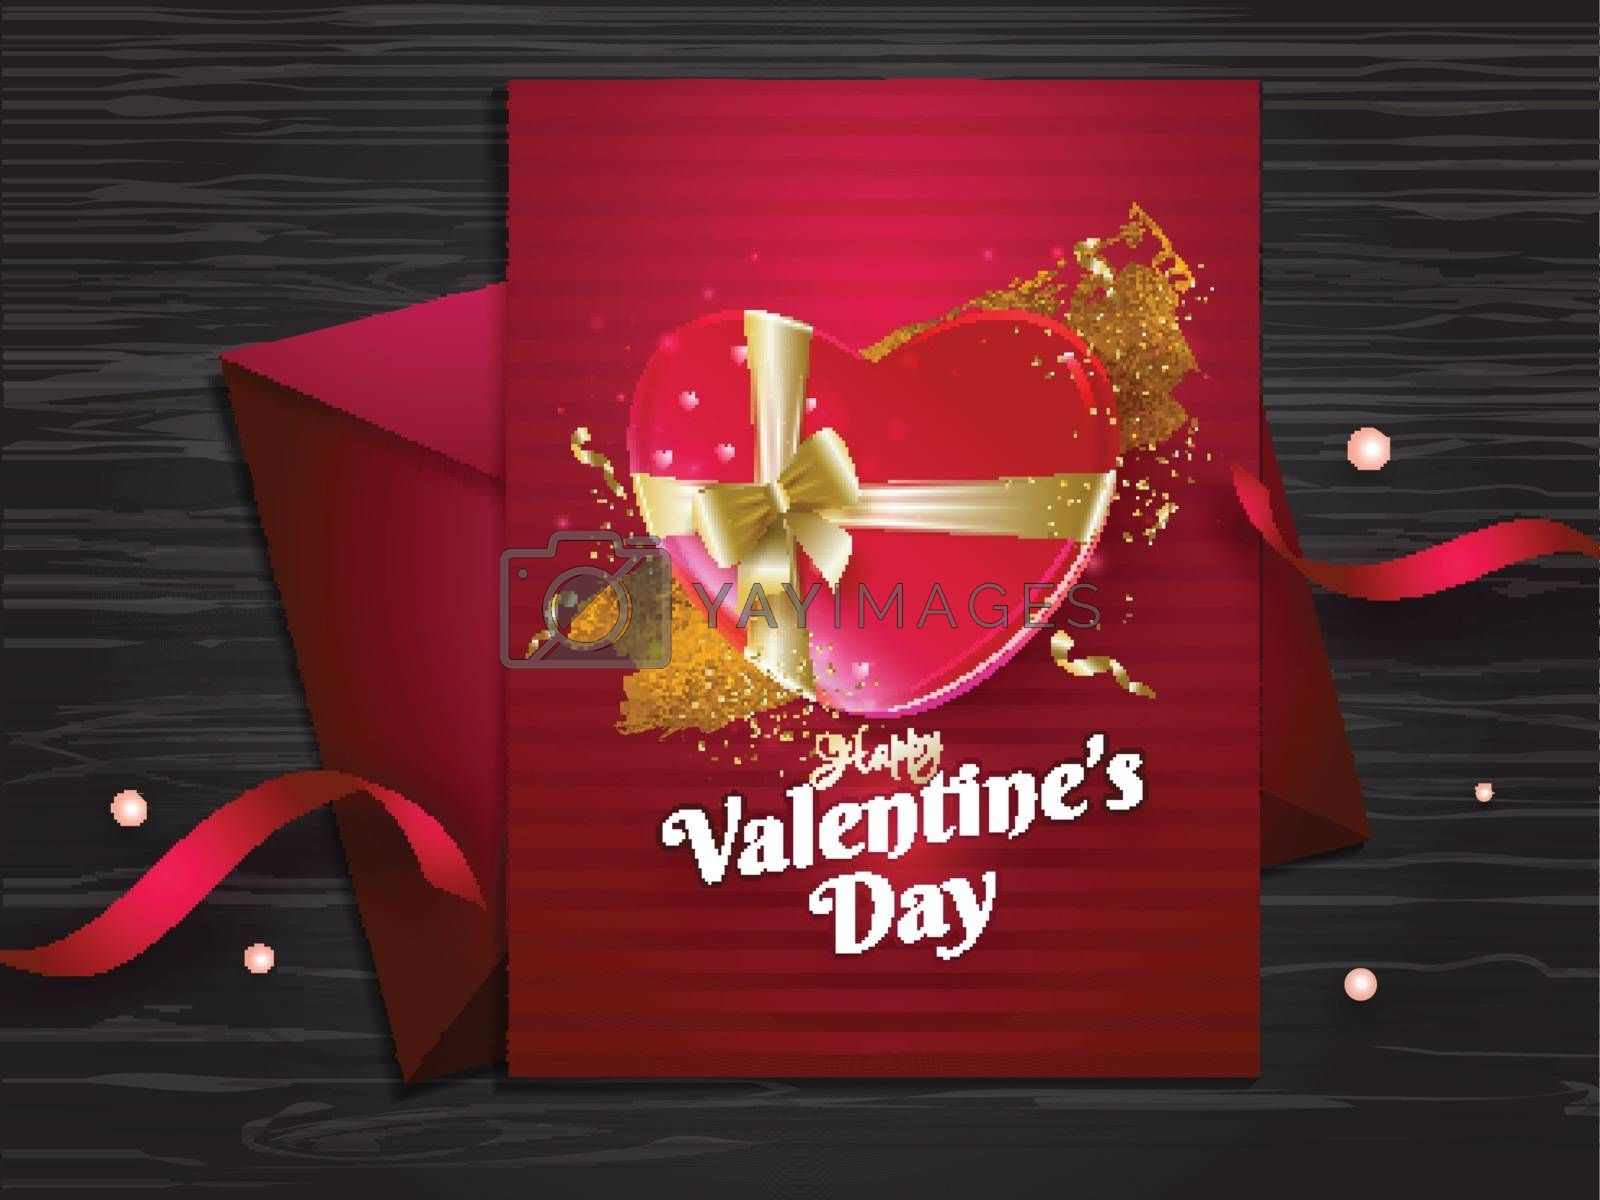 Happy Valentine's Day greeting card design on wooden texture bac by aispl